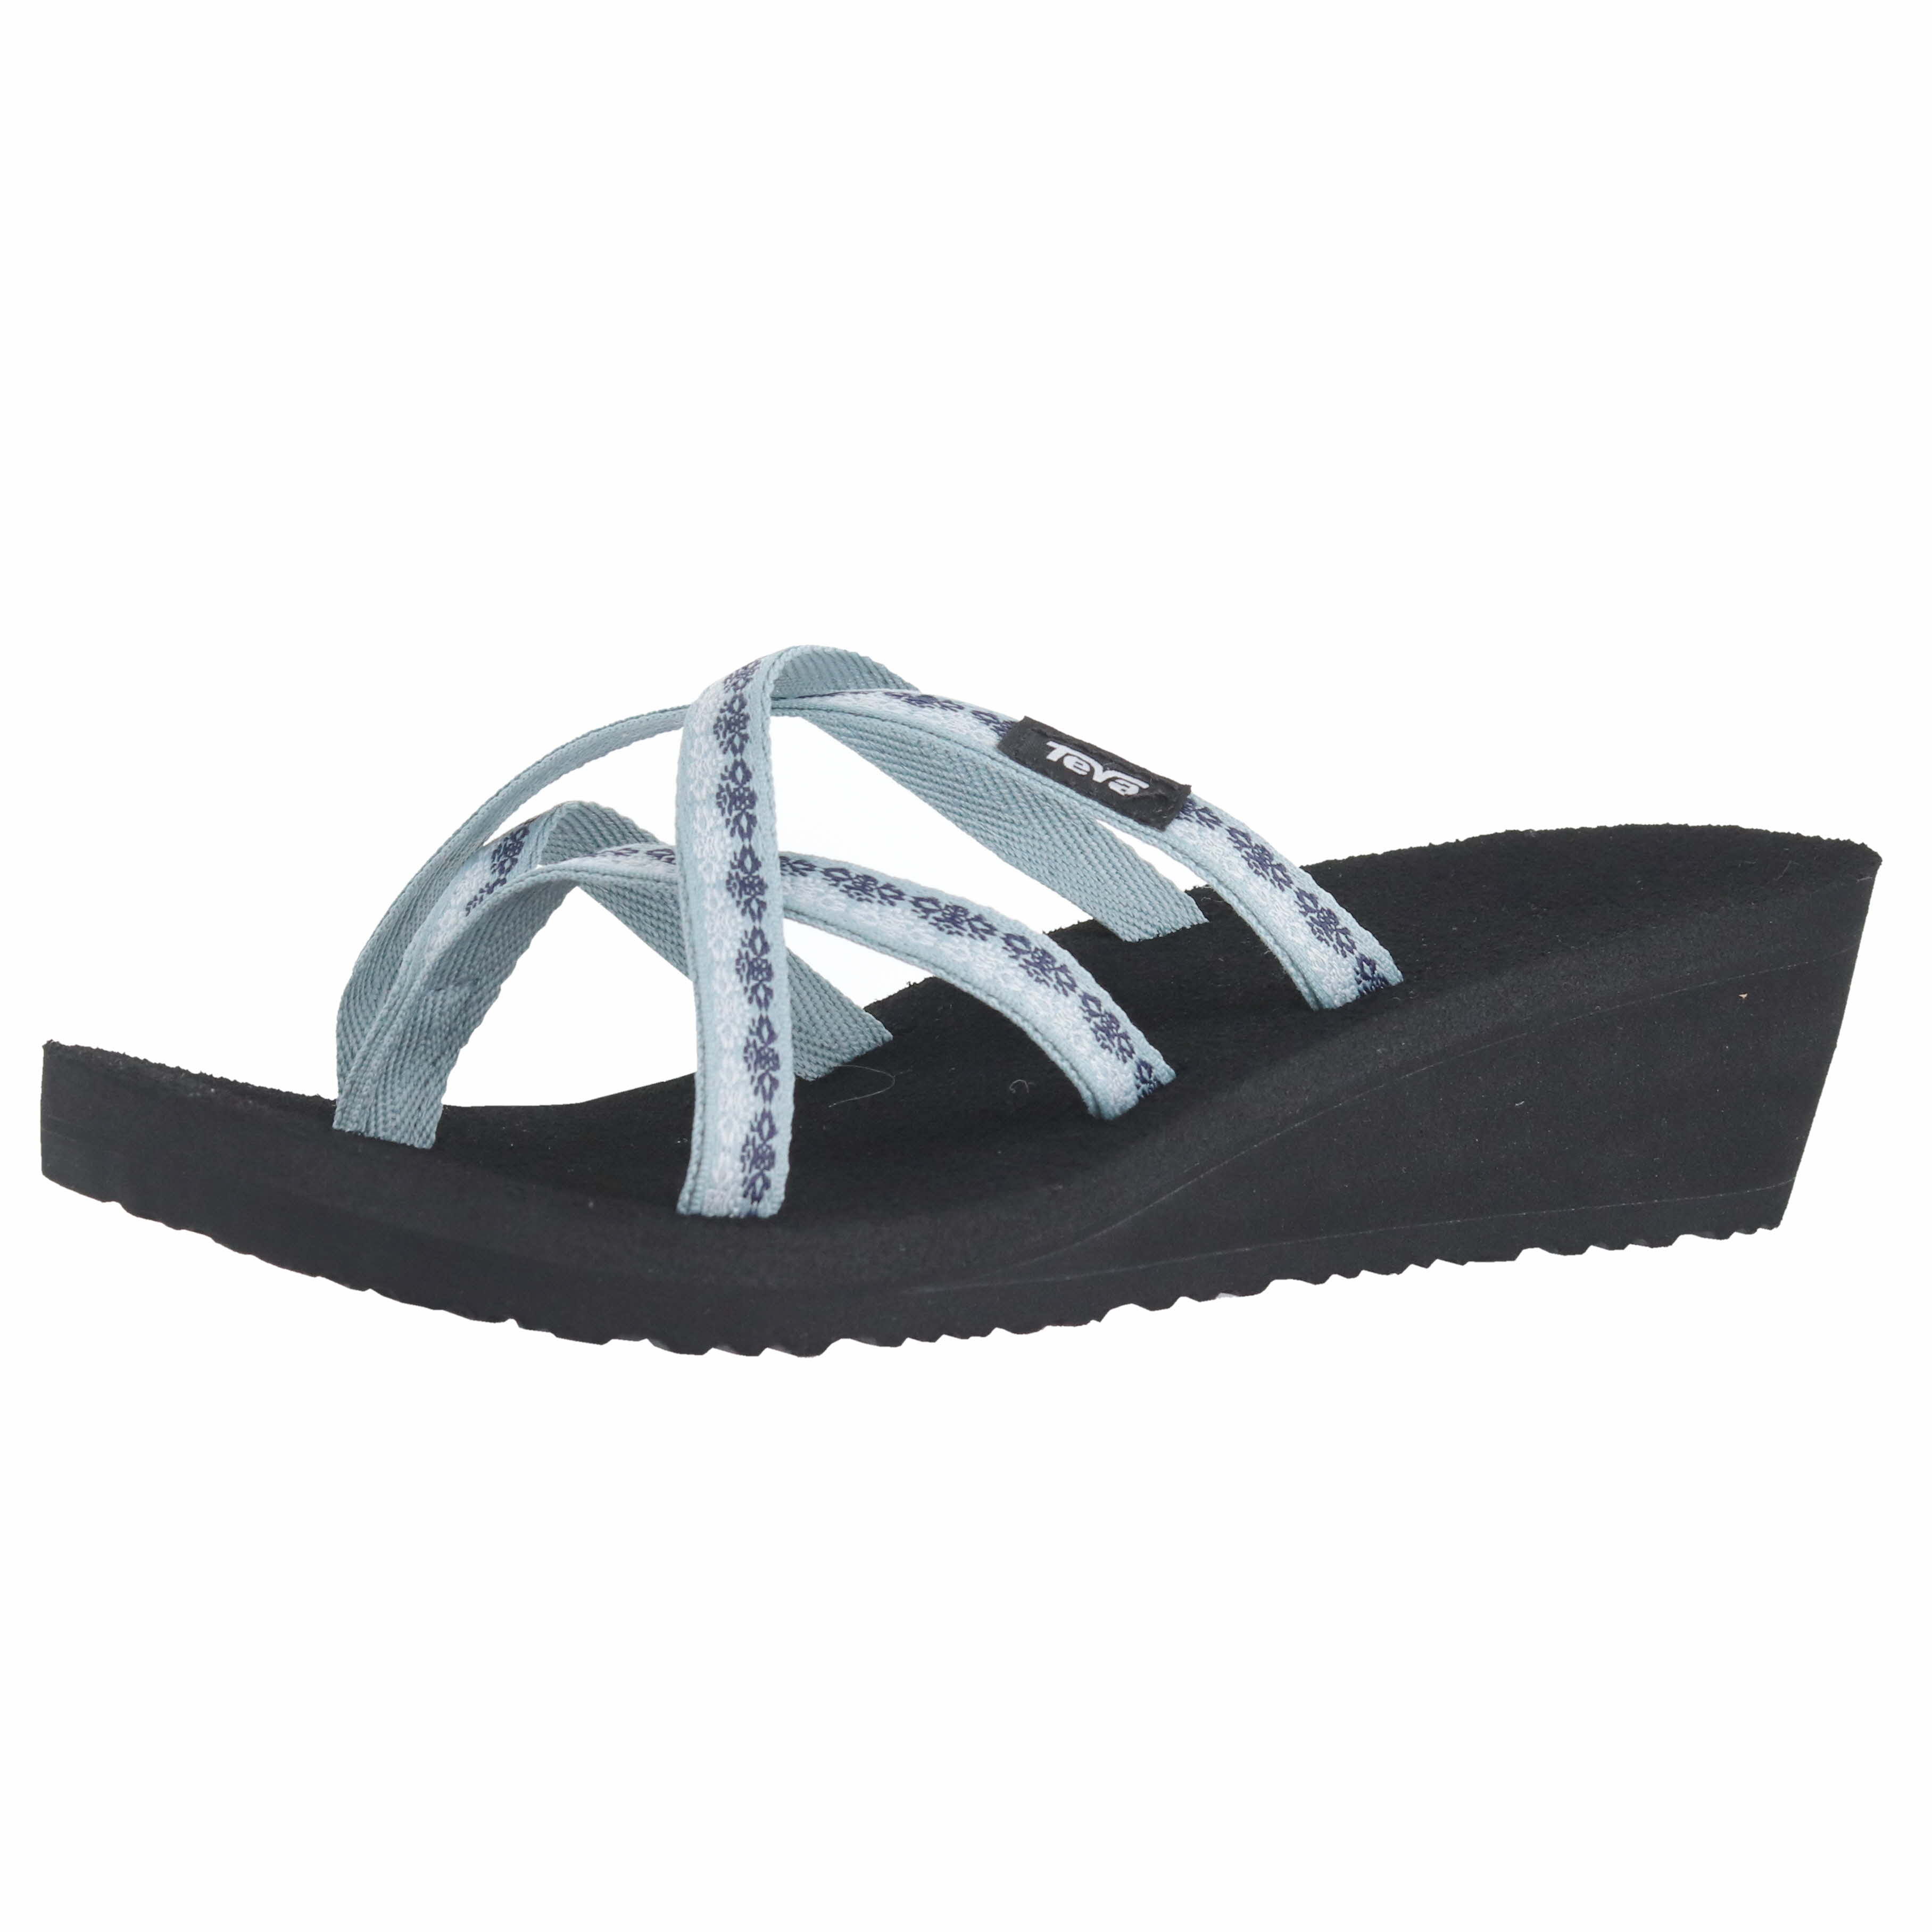 7b85be8dddd828 Details about Teva Mush Mandalyn Wedge Ola 2 Chisolm Gray Mist Womens Wedges  Size 11M